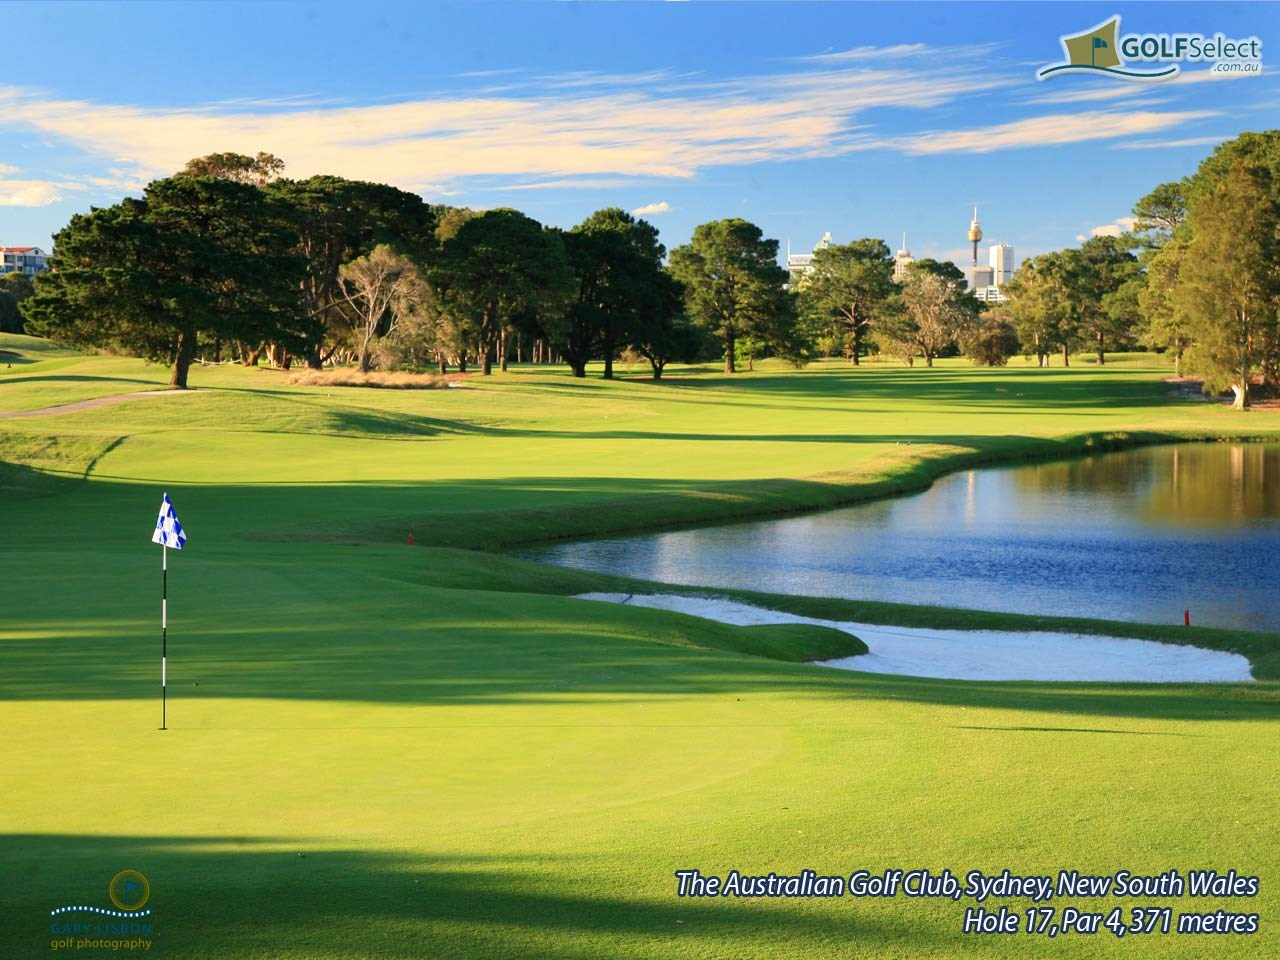 The Australian Golf Club Hole 17, Par 4, 371 metres